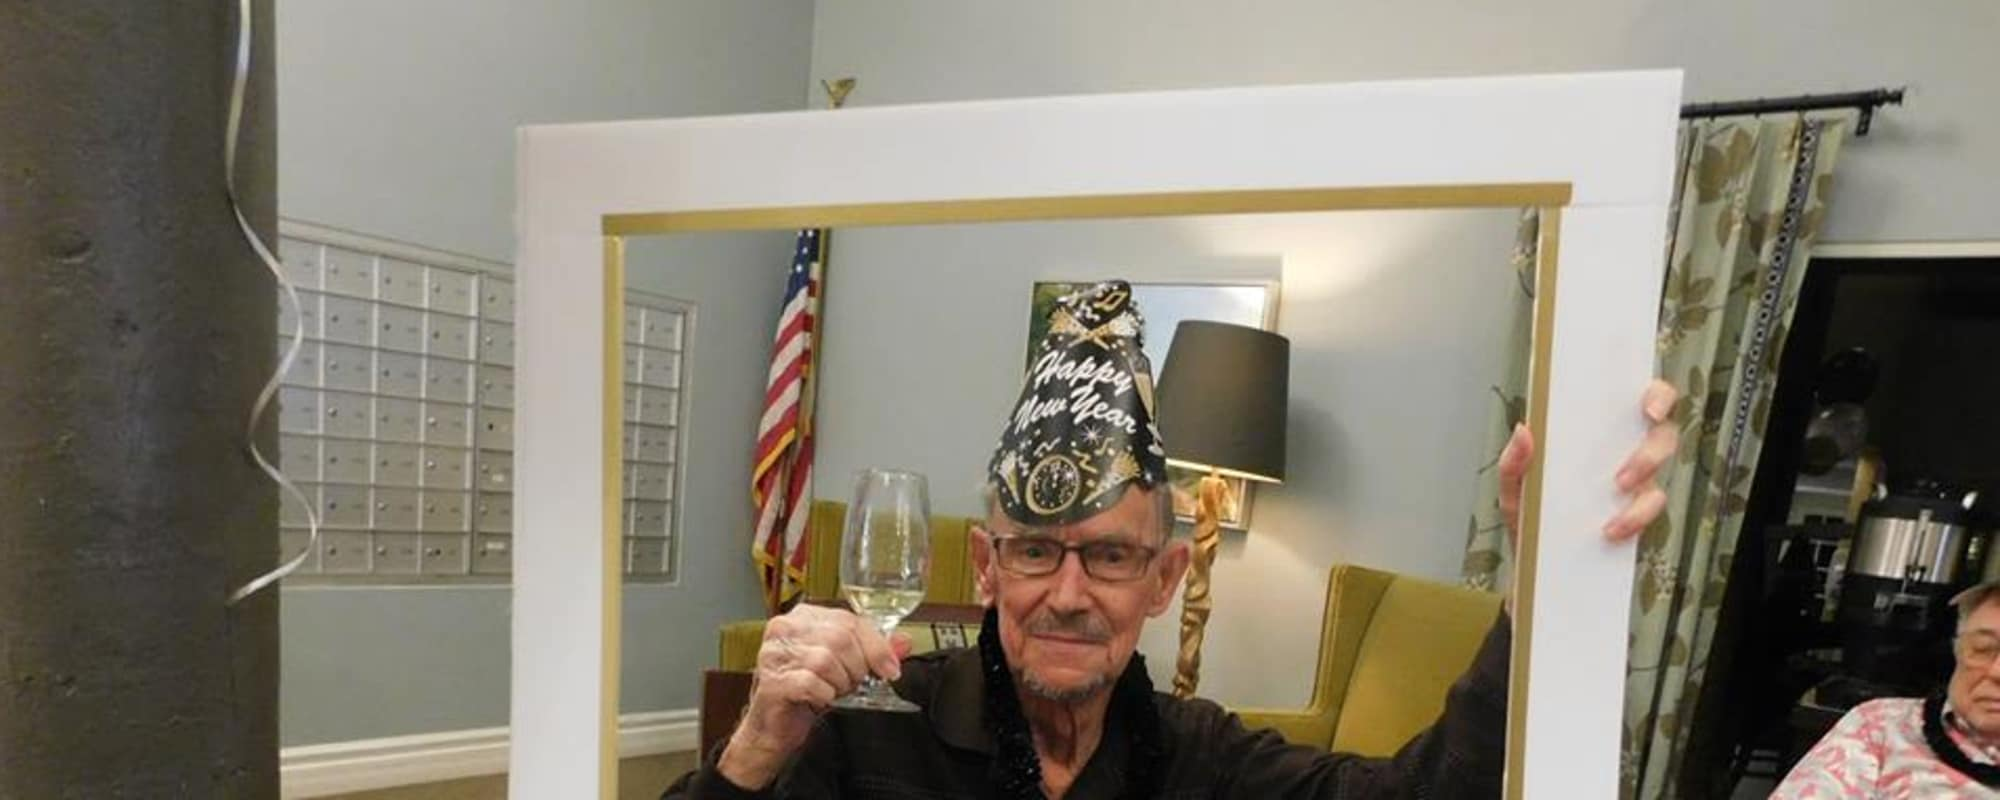 Senior celebrating New Years Eve at The Inn at Greenwood Village in Greenwood Village, Colorado